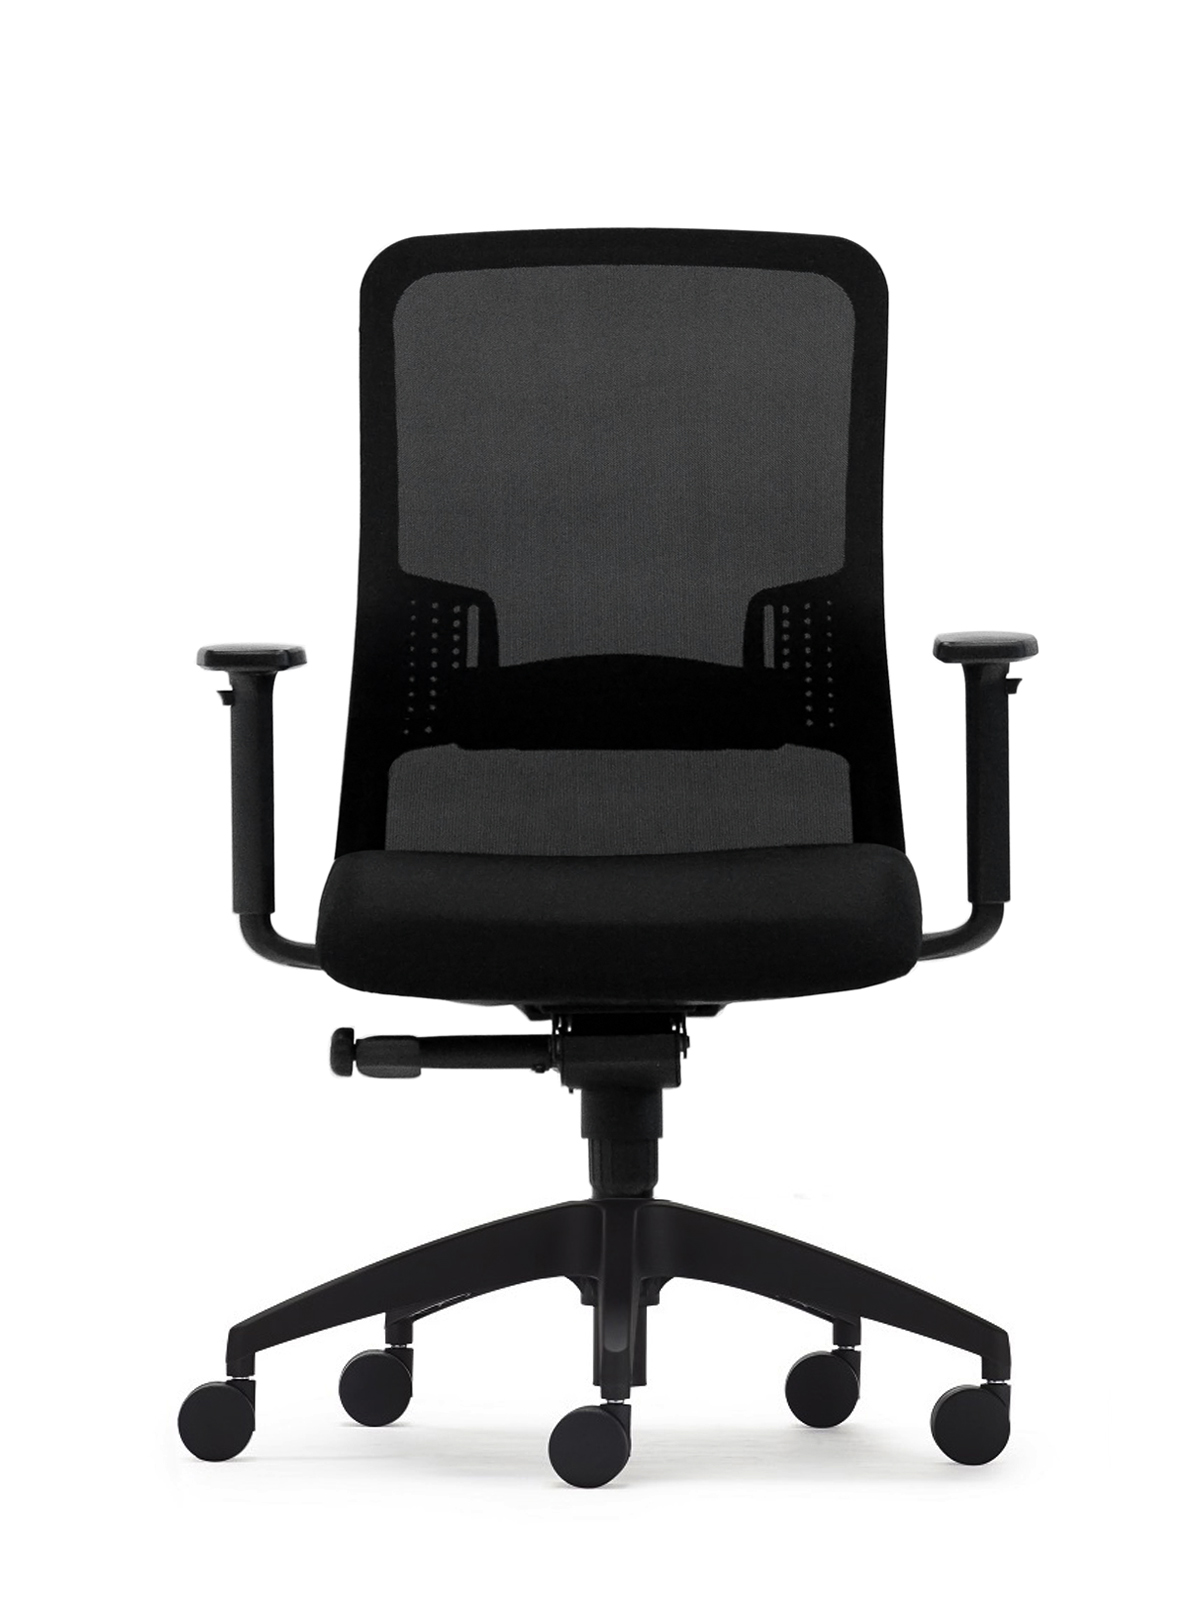 Buy A Graphite Office Chair Office Chairs Delivery